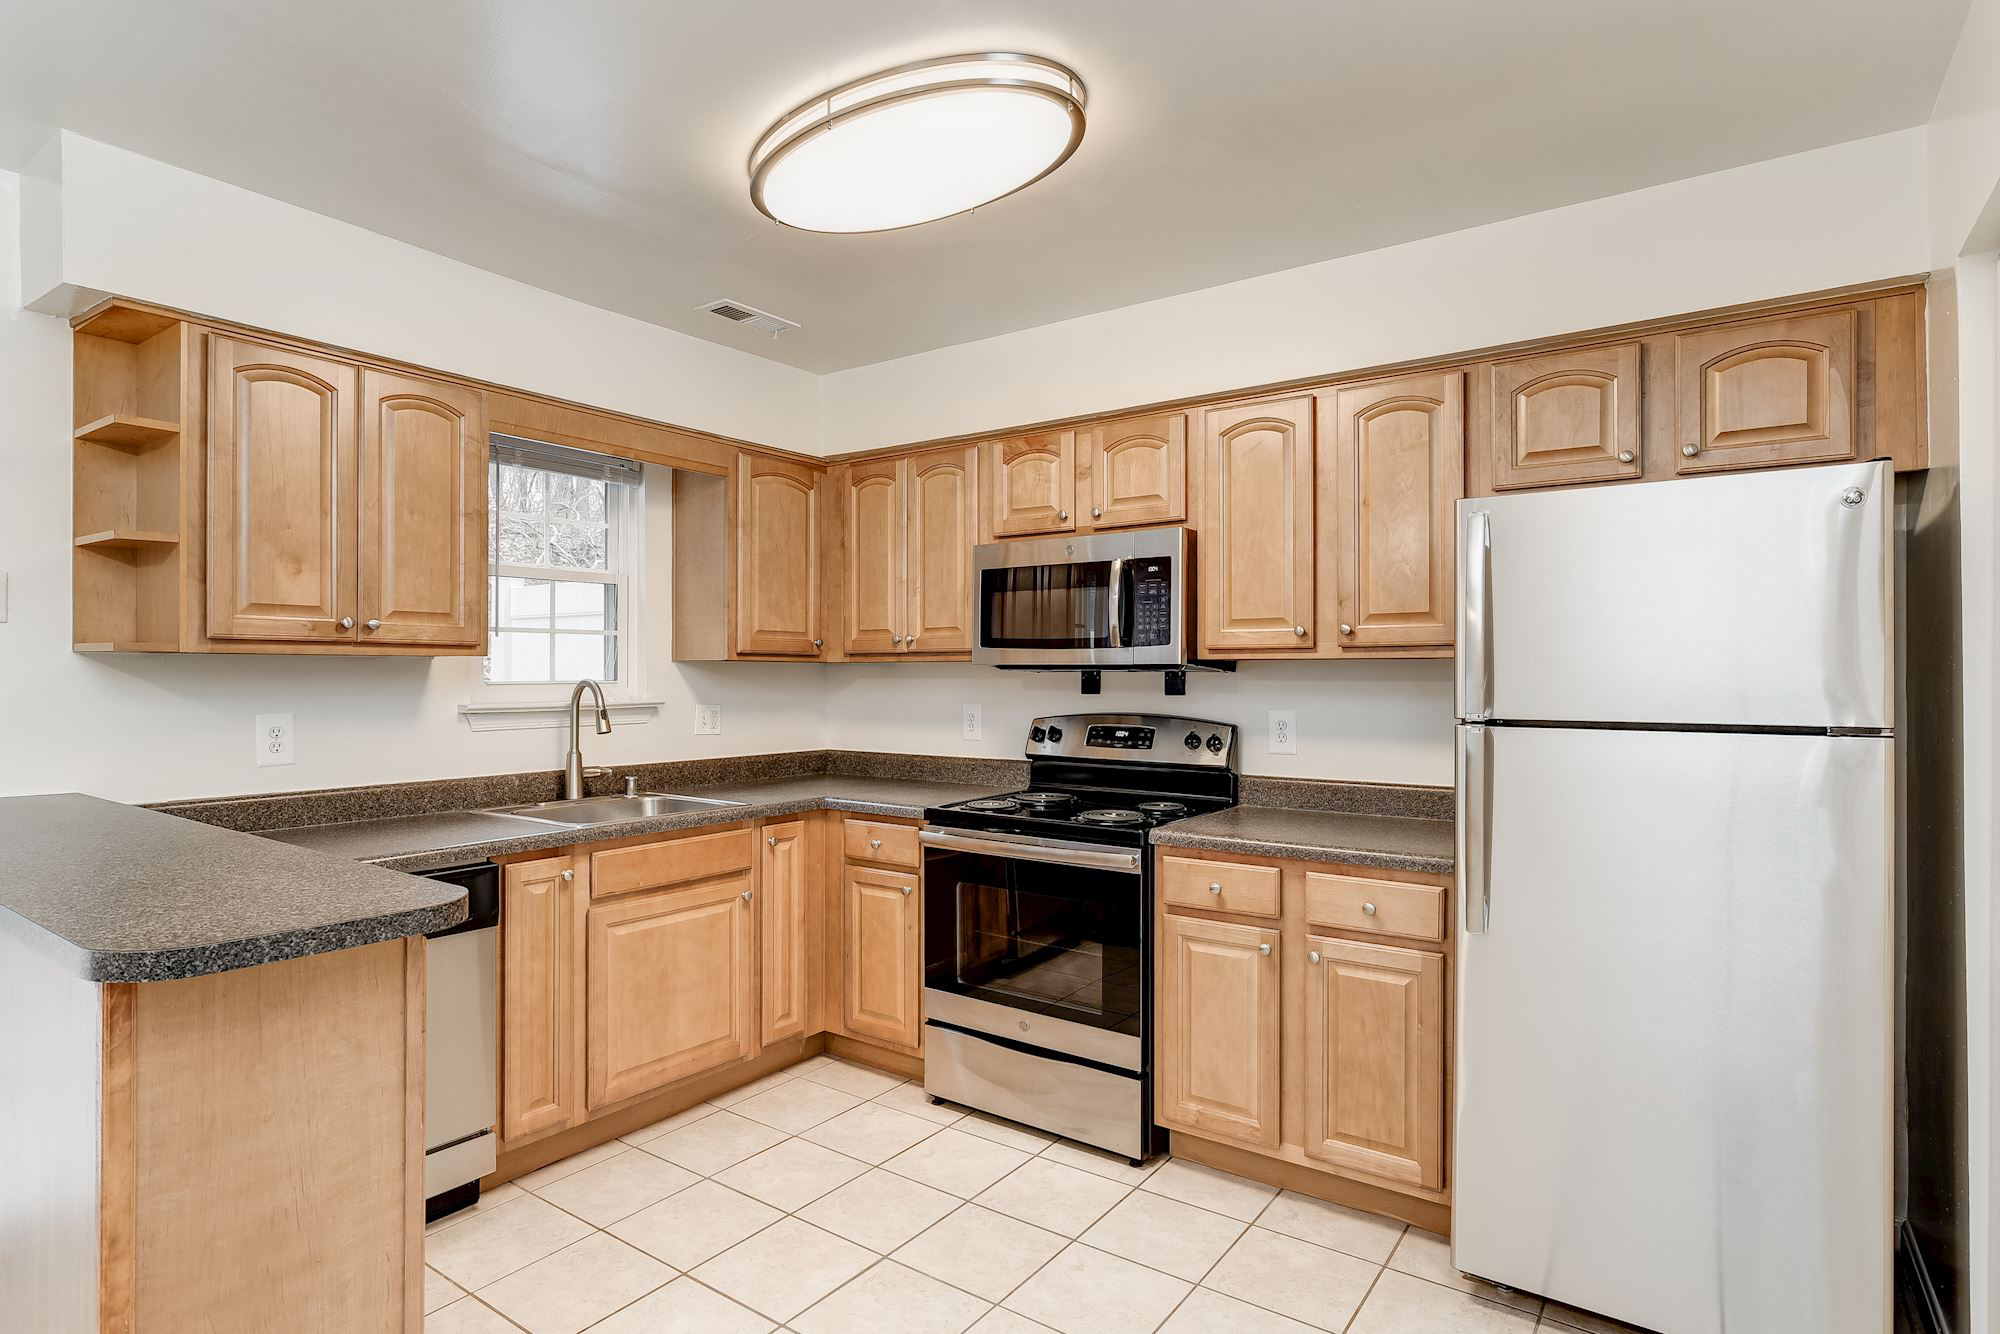 Olde Forge Townhomes in Perry Hall, MD - Renovated Kitchen